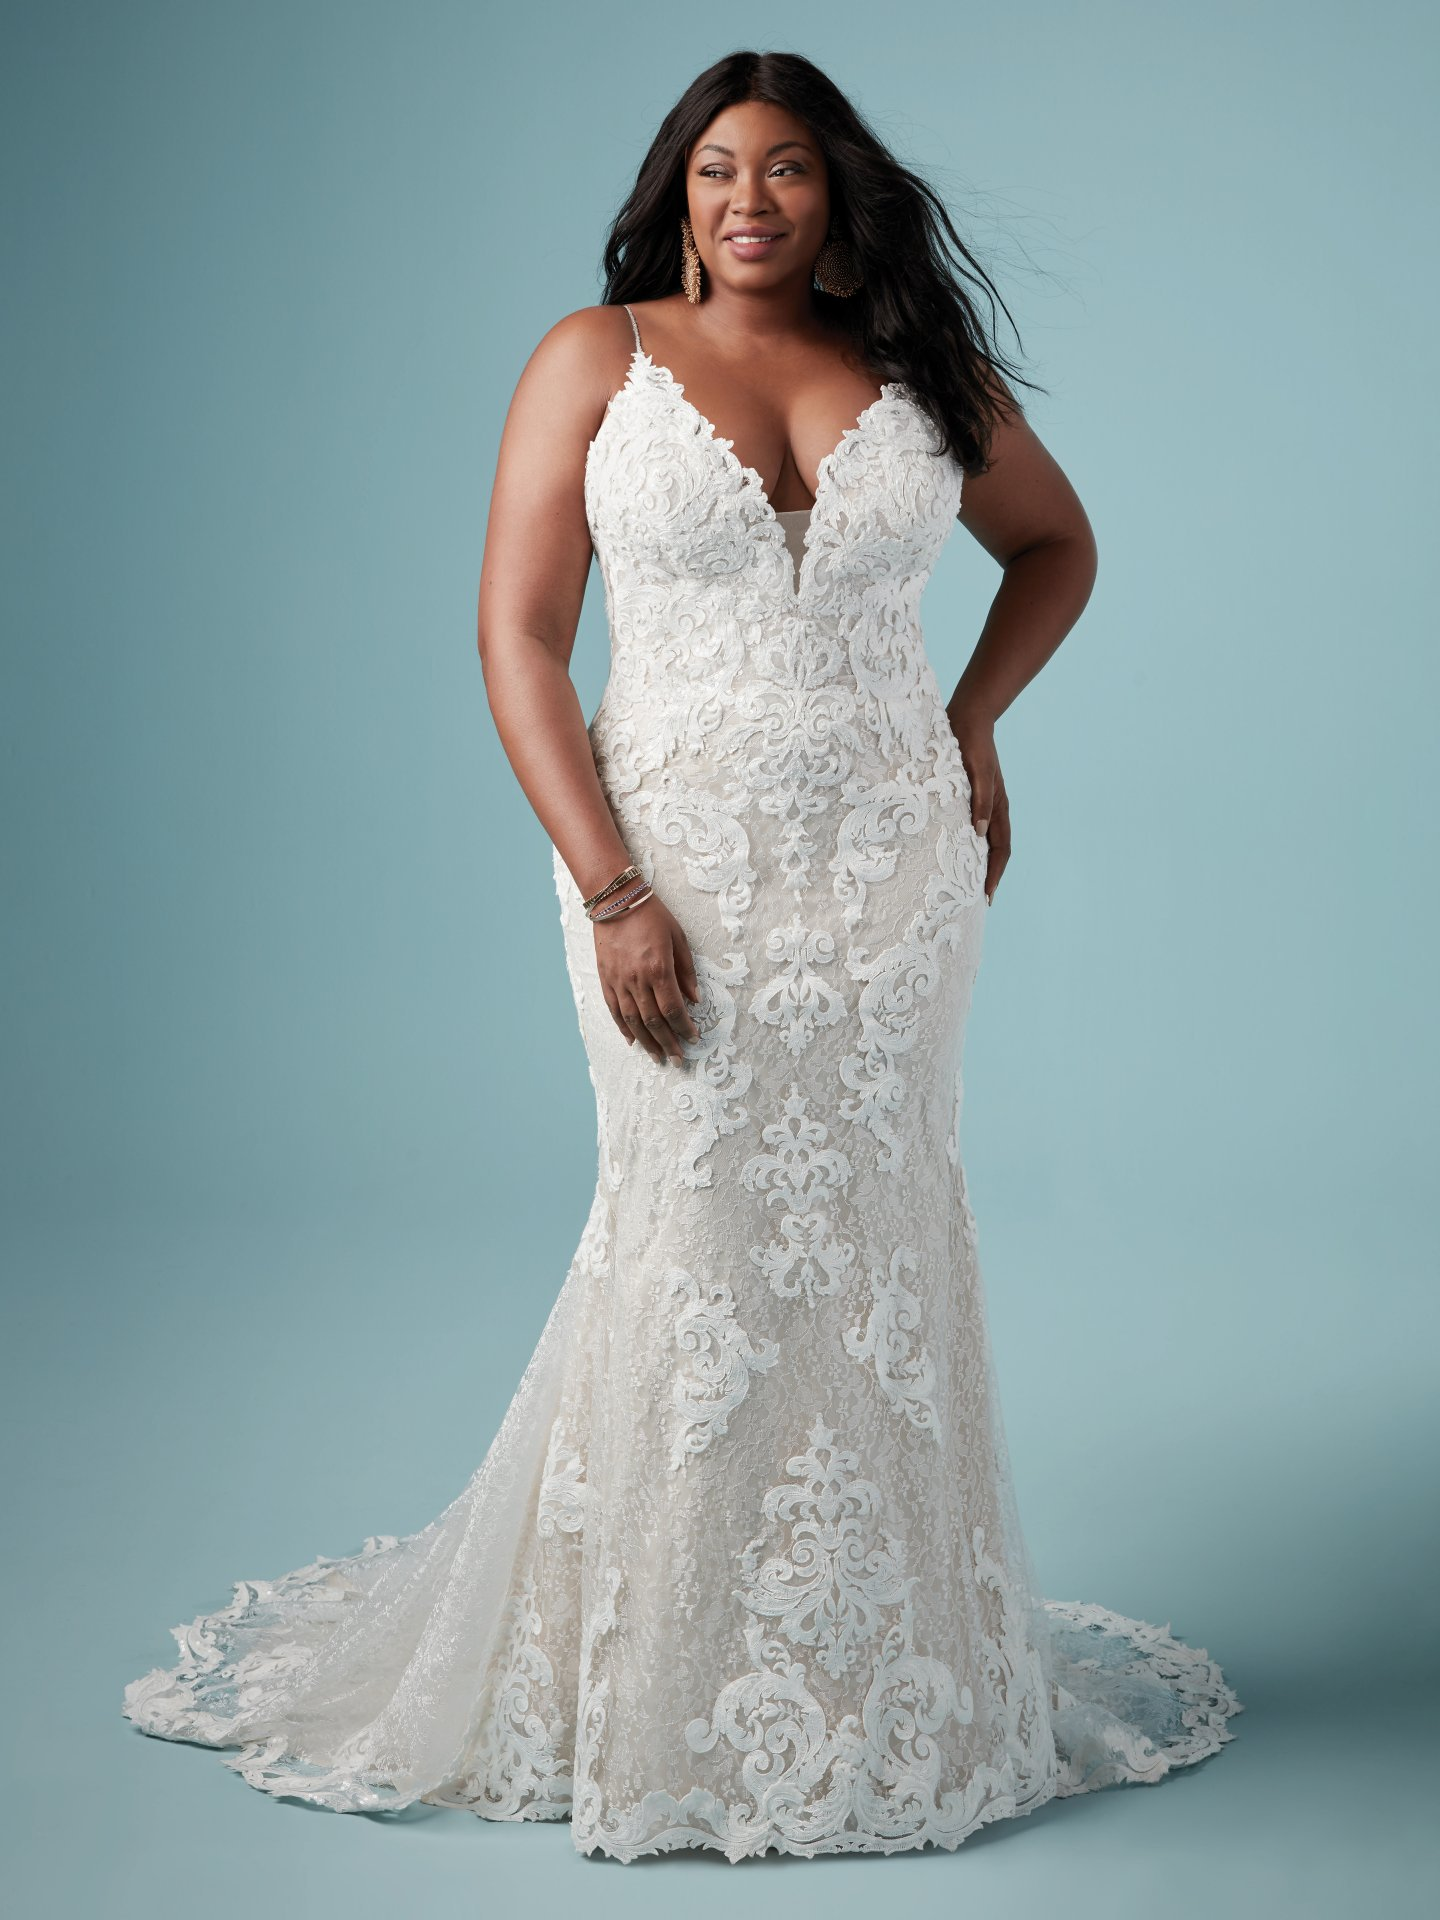 Maggie-Sottero-Tuscany-Marie-8MS794AC-Curve-Main.jpg